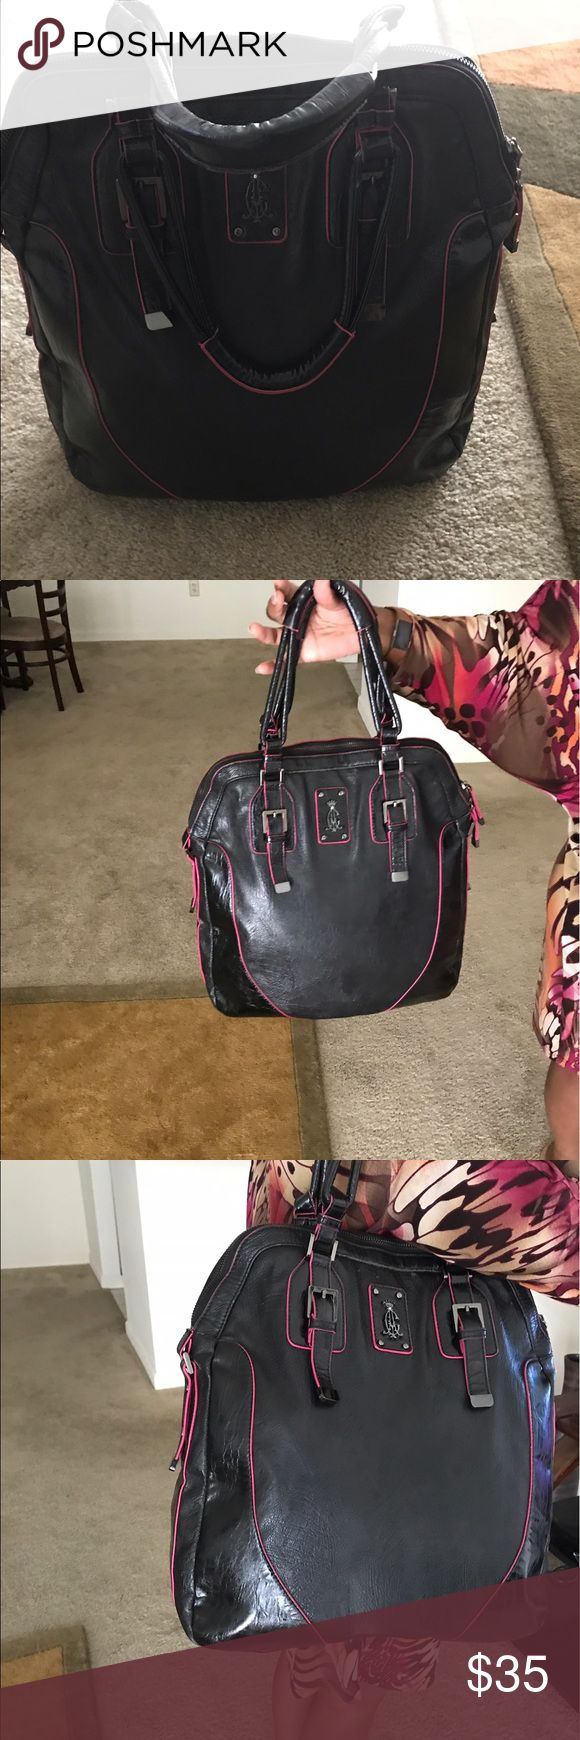 Christian Audigier Oversized Faux Leather Hand Bag Oversized Faux Leather by Christian Audigier   Bag is in good condition  there are scuffs outside of bag consistent with wear. Bag is very clean inside no stains or odor Christian Audigier Bags Shoulder Bags